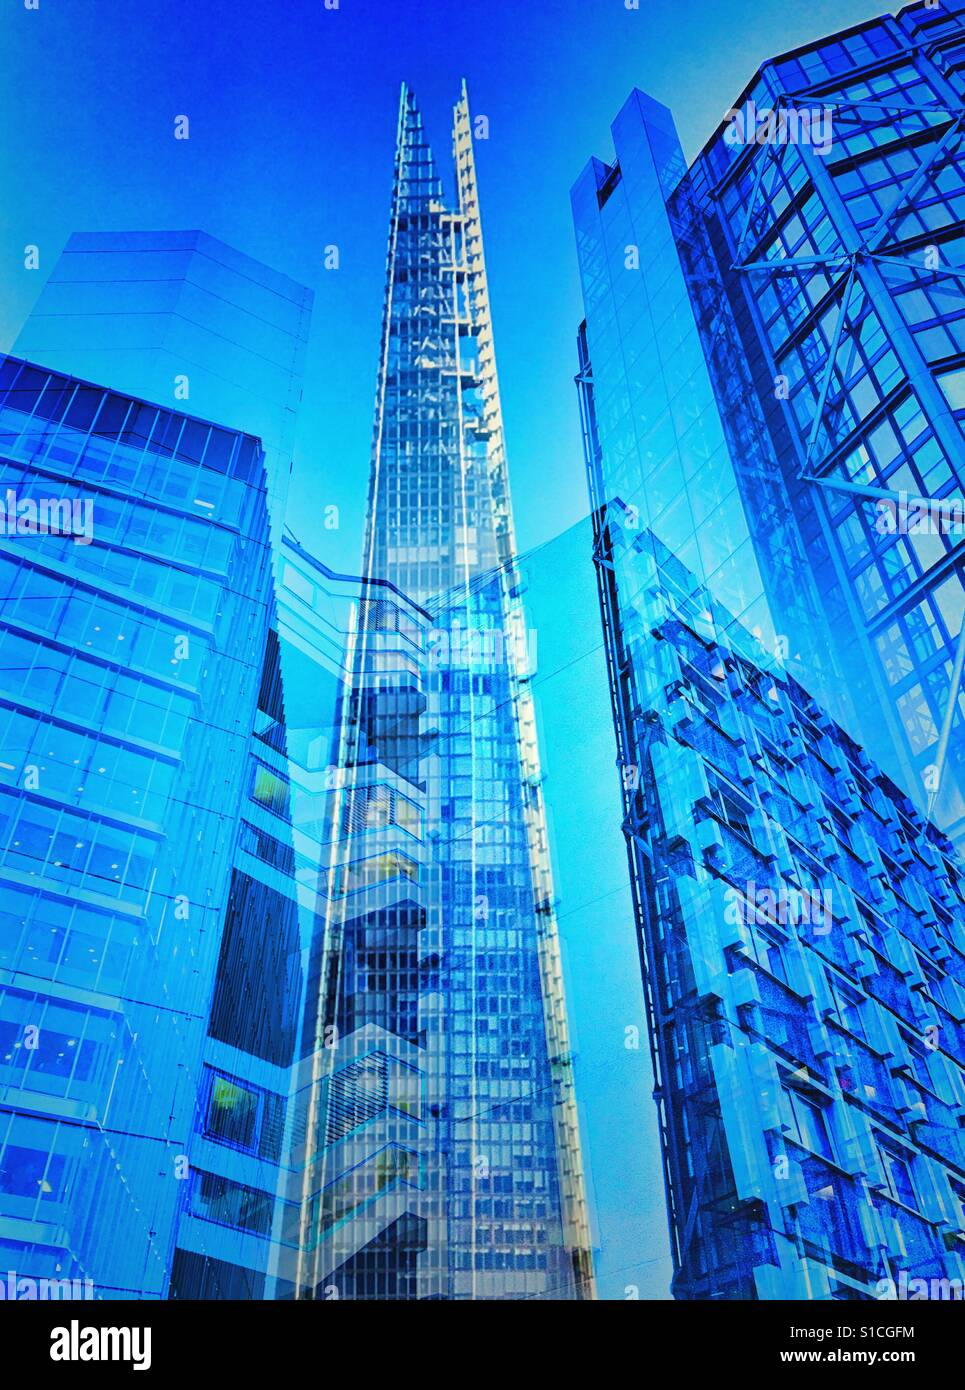 The Shard and other buildings in London shown as an abstract image - Stock Image